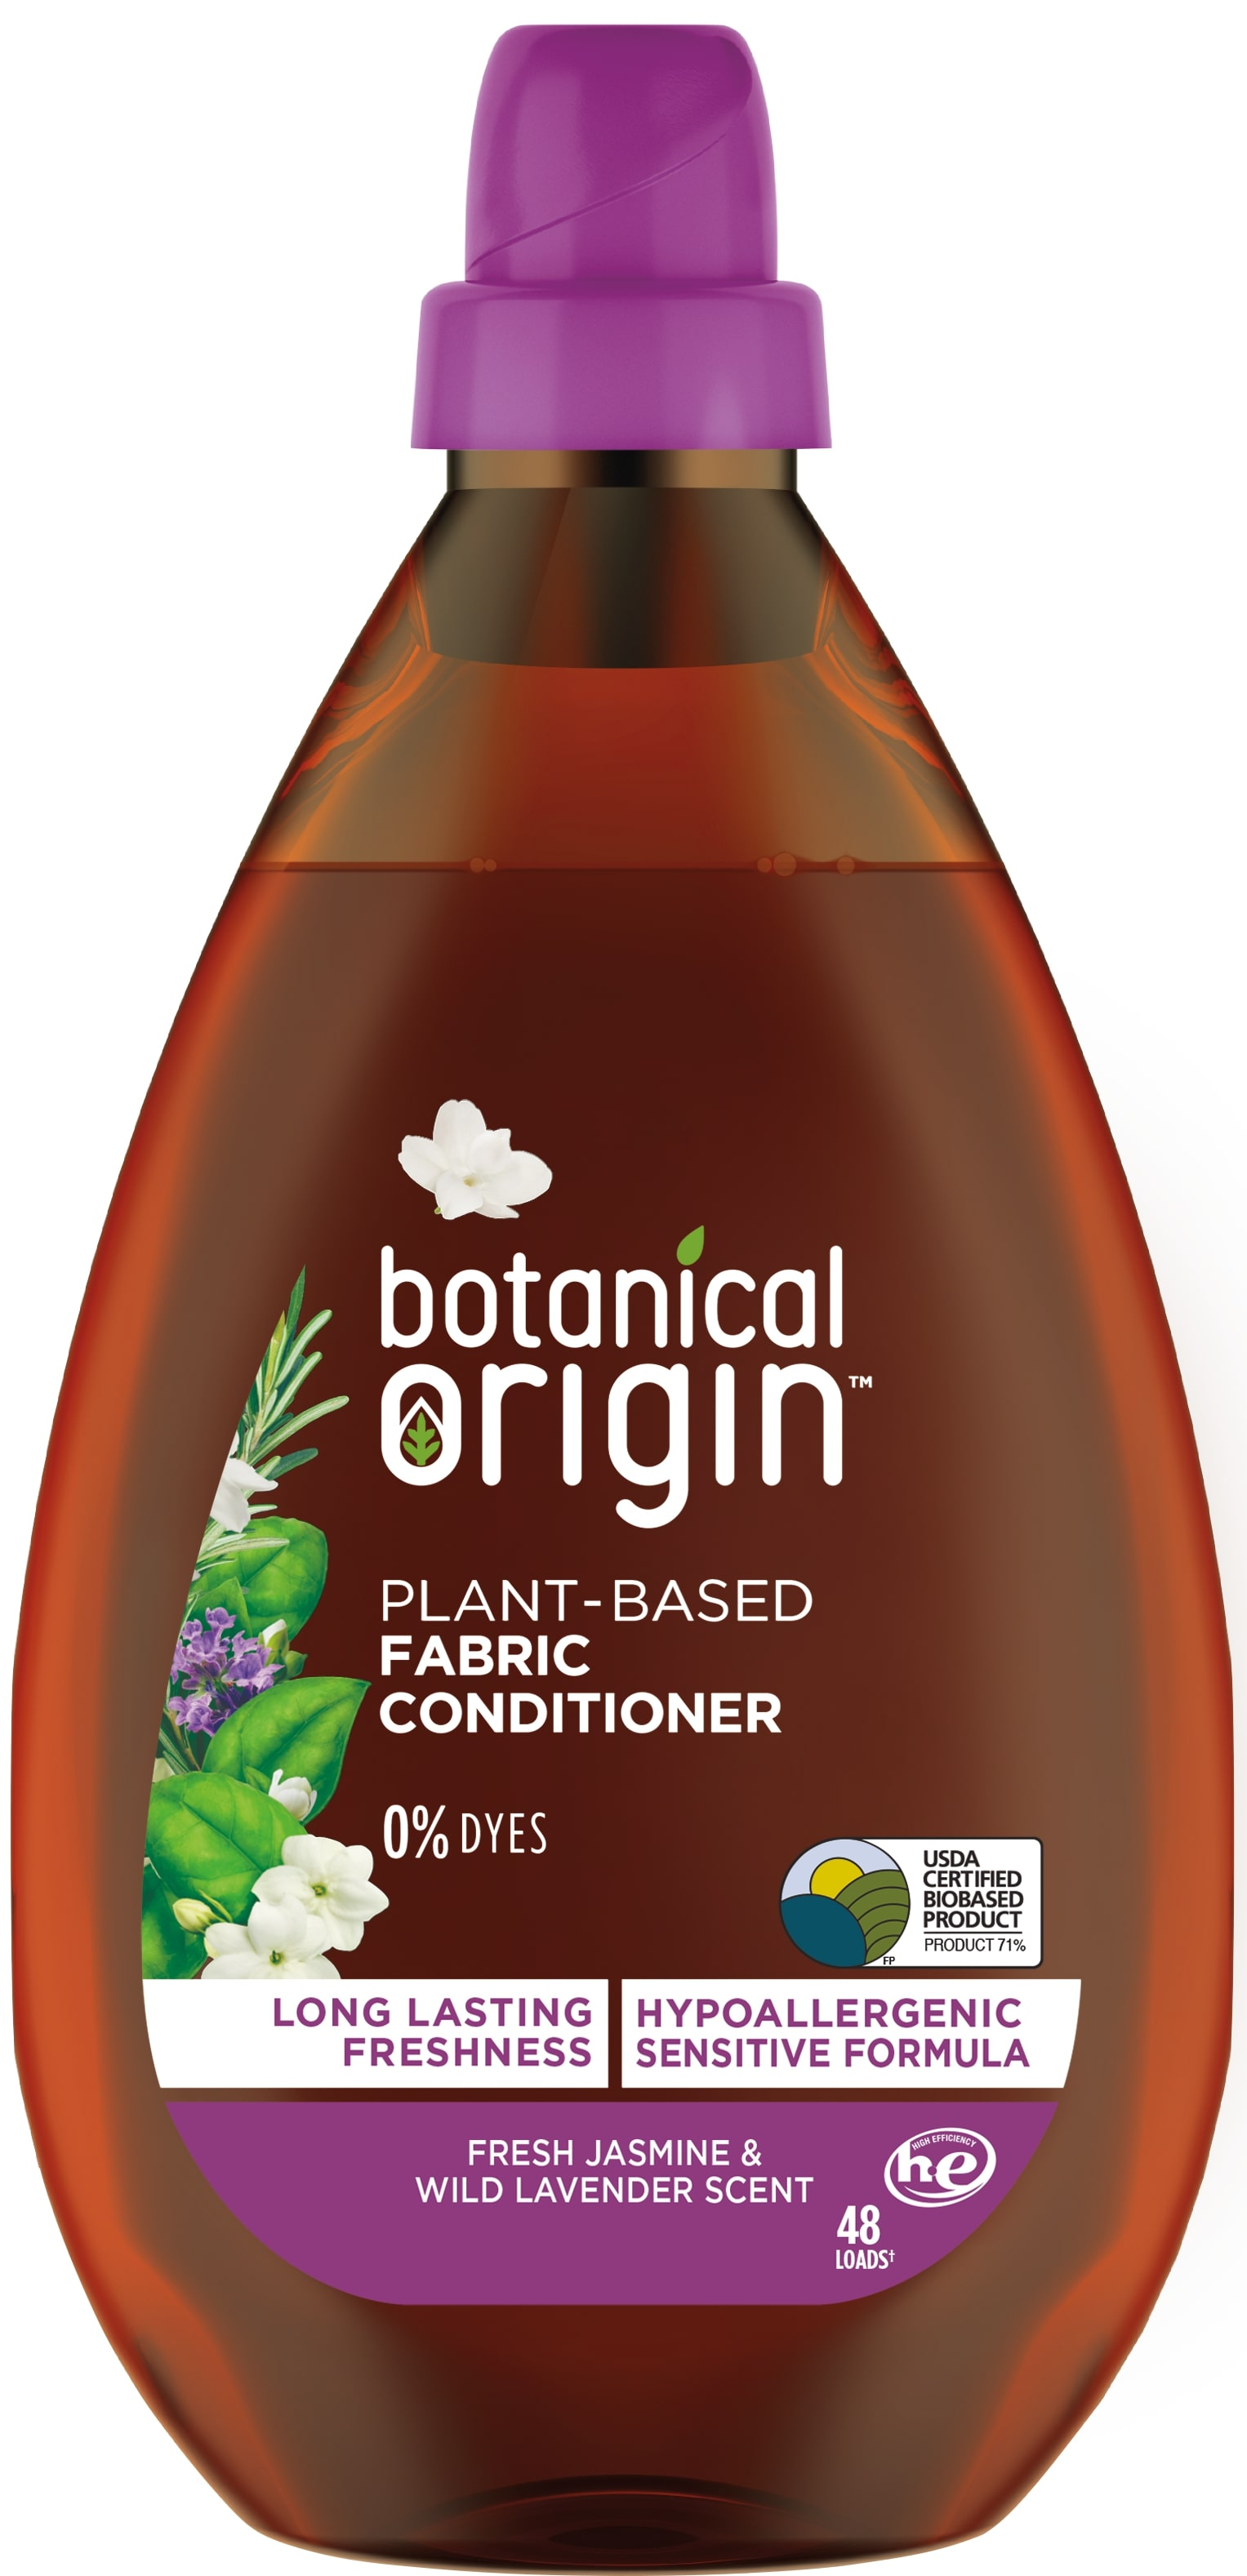 Botanical Origin™ Plant-Based Fabric Conditioner - Fresh Jasmine & Wild Lavender